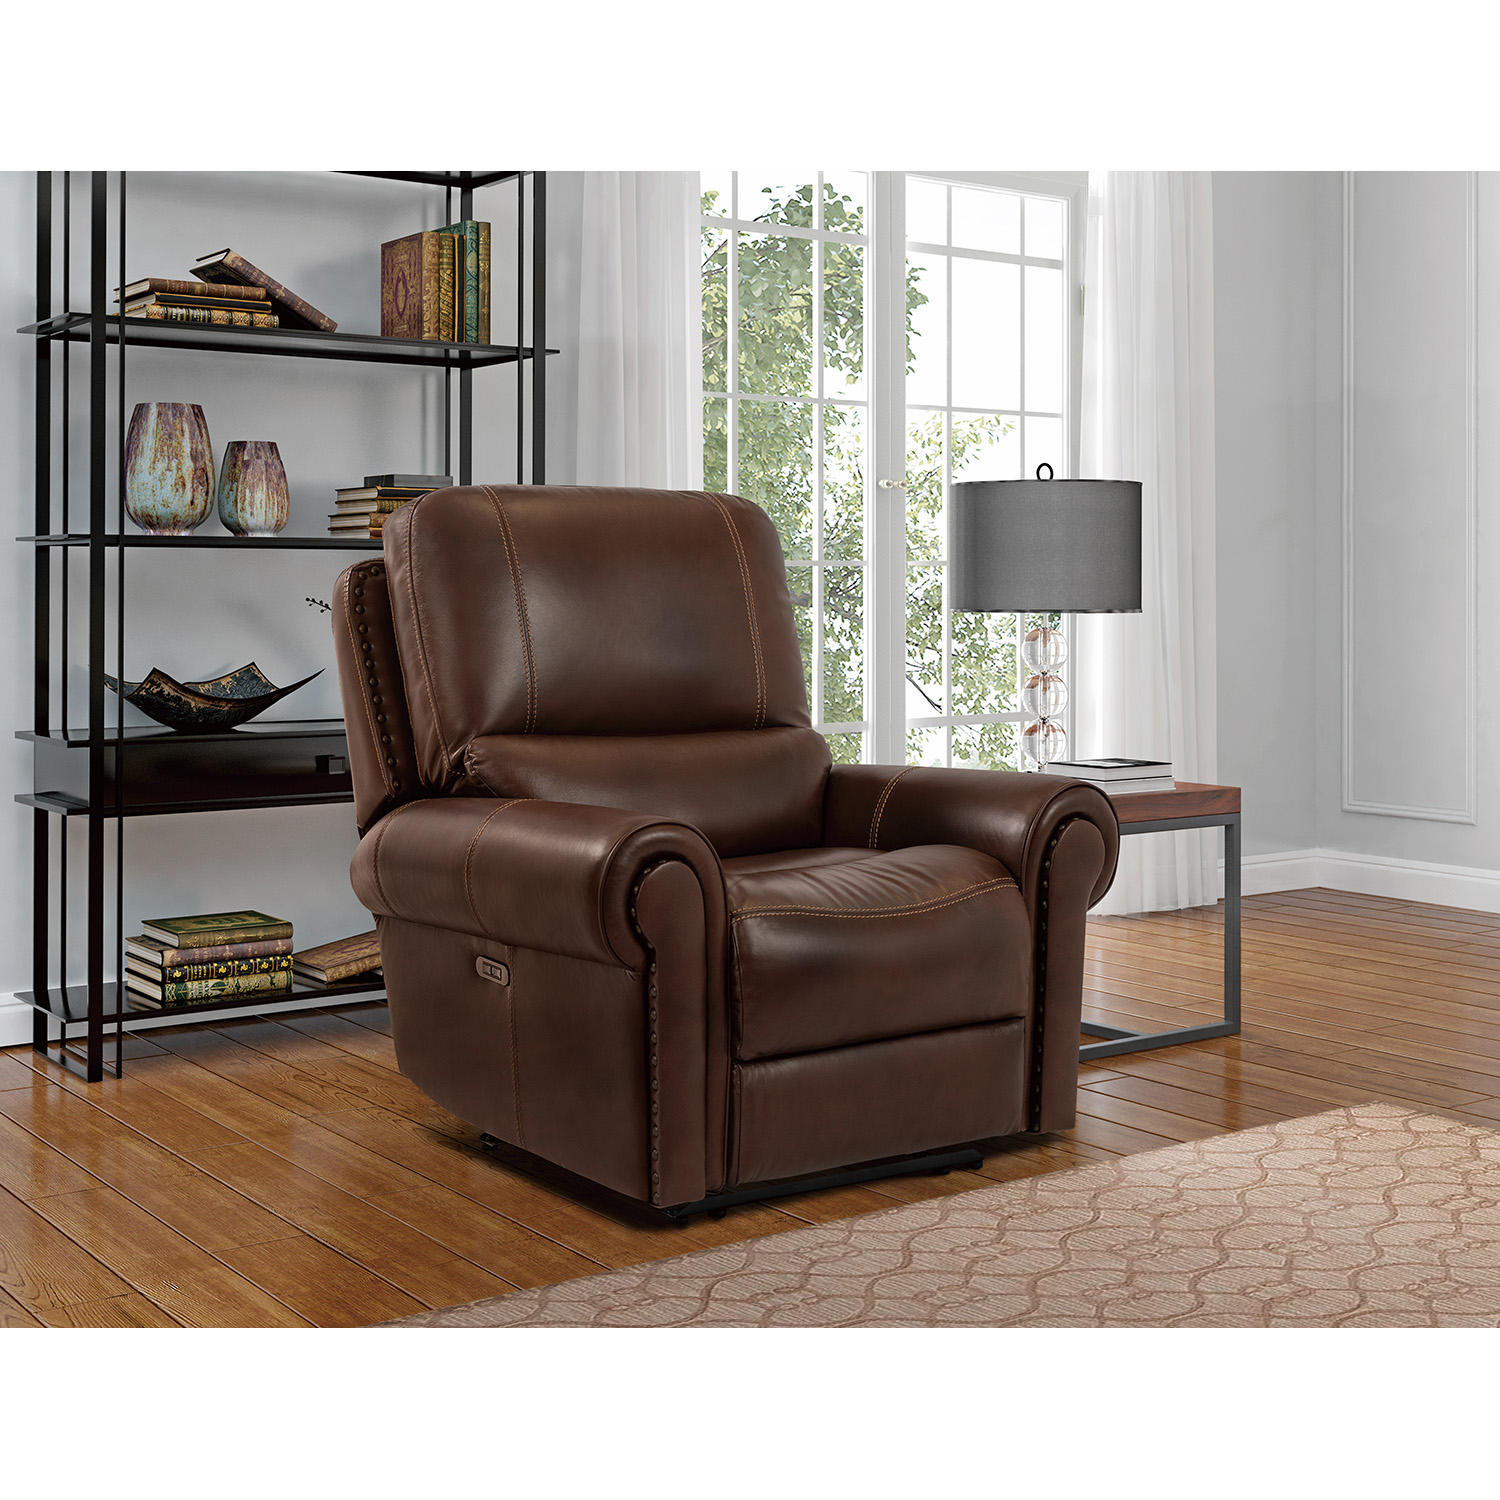 Morrisofa Harrison Leather Power Recliner